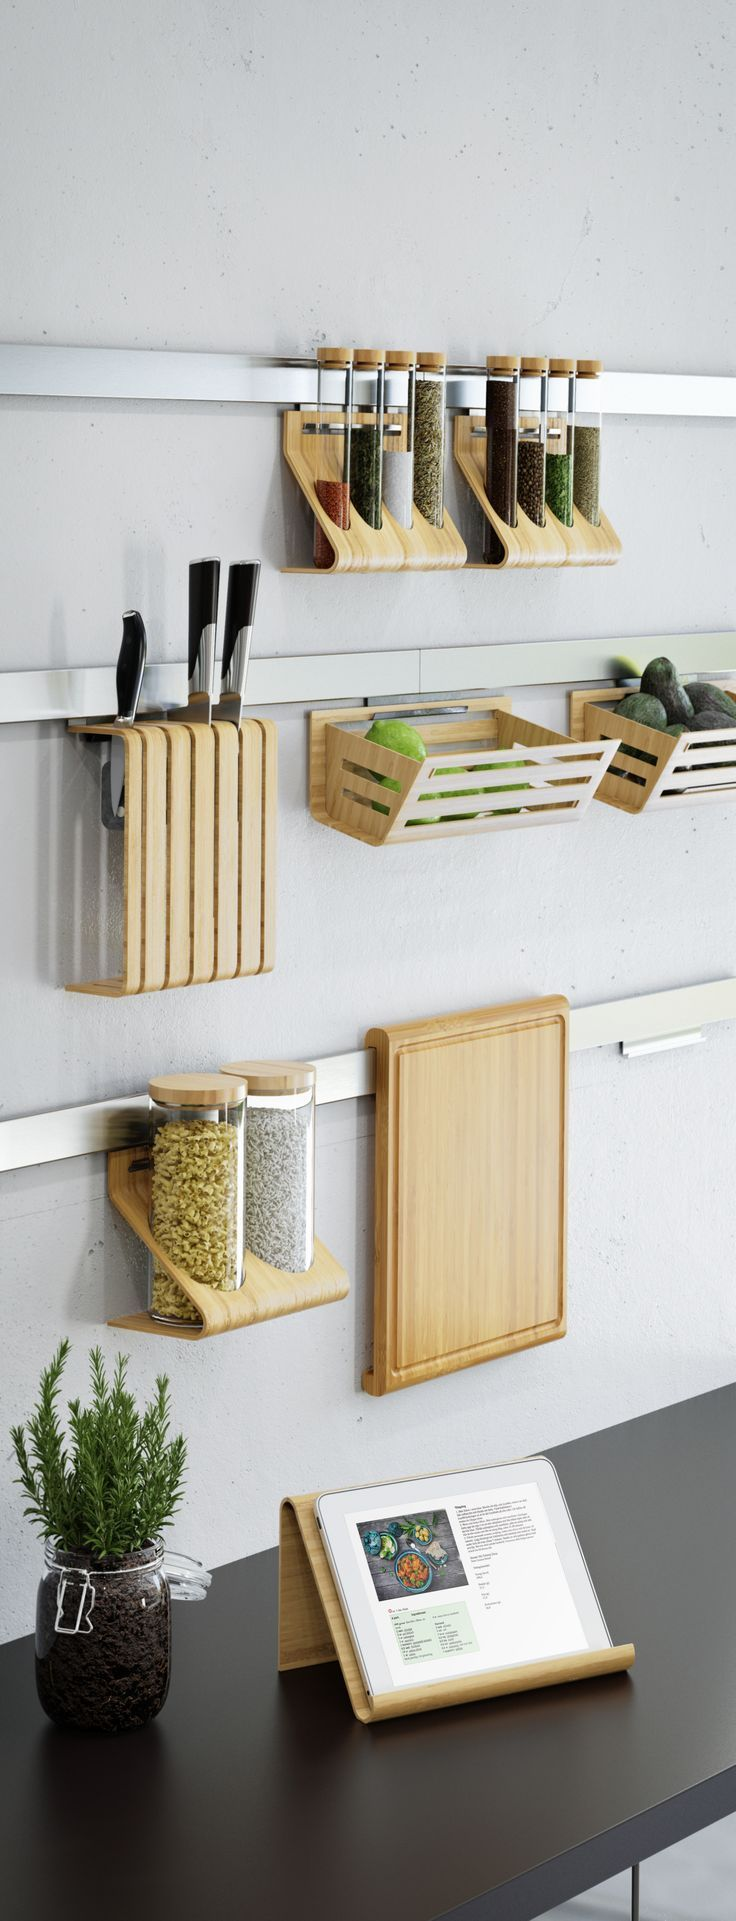 awesome nice RIMFORSA series - IKEA by www.cool-homedeco...... by http://www.coolhome-decorationsideas.xyz/kitchen-furniture/nice-rimforsa-series-ikea-by-www-cool-homedeco/